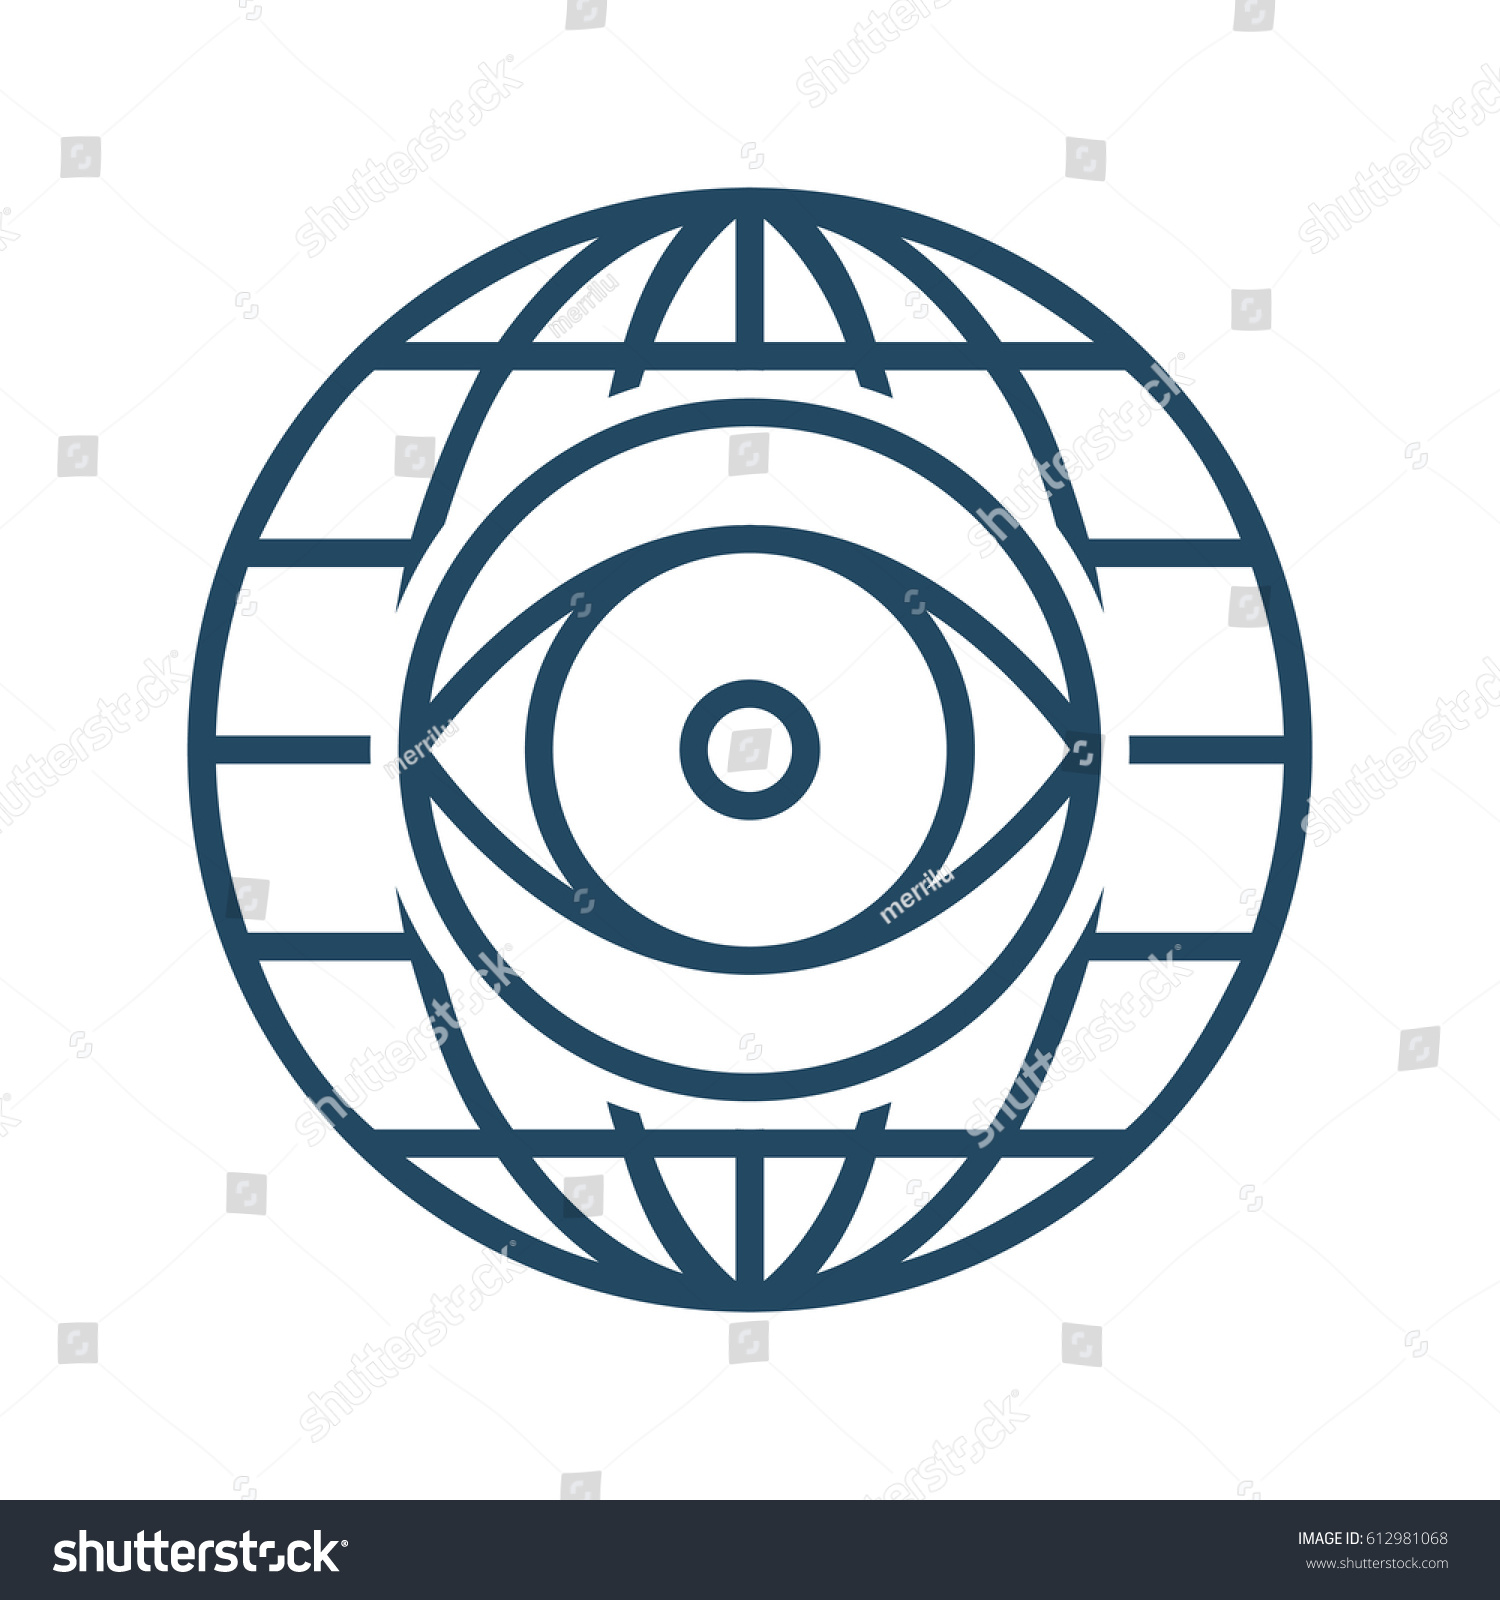 Eye inside globe vector icon meaning stock vector 612981068 eye inside globe vector icon meaning global outlook biocorpaavc Images